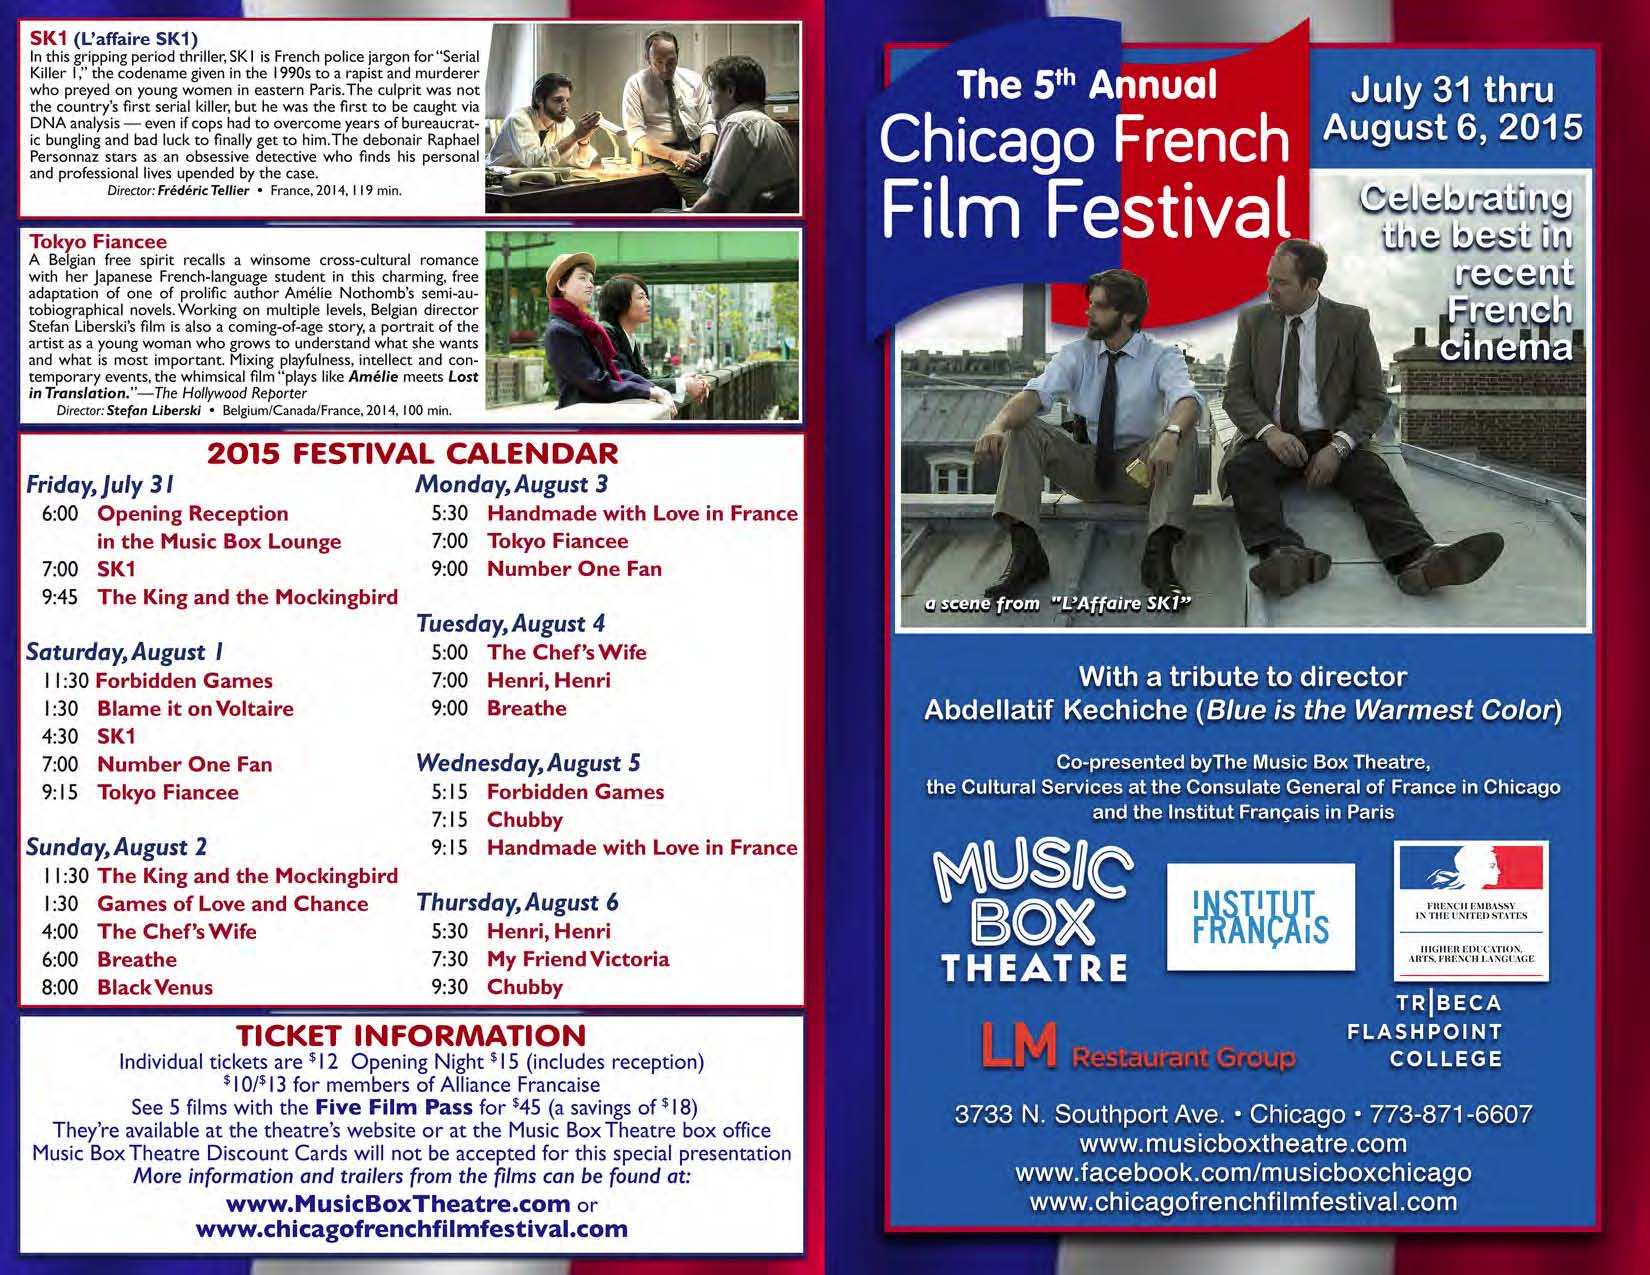 FrenchFilmEFlyer2015 (2)_Page_1